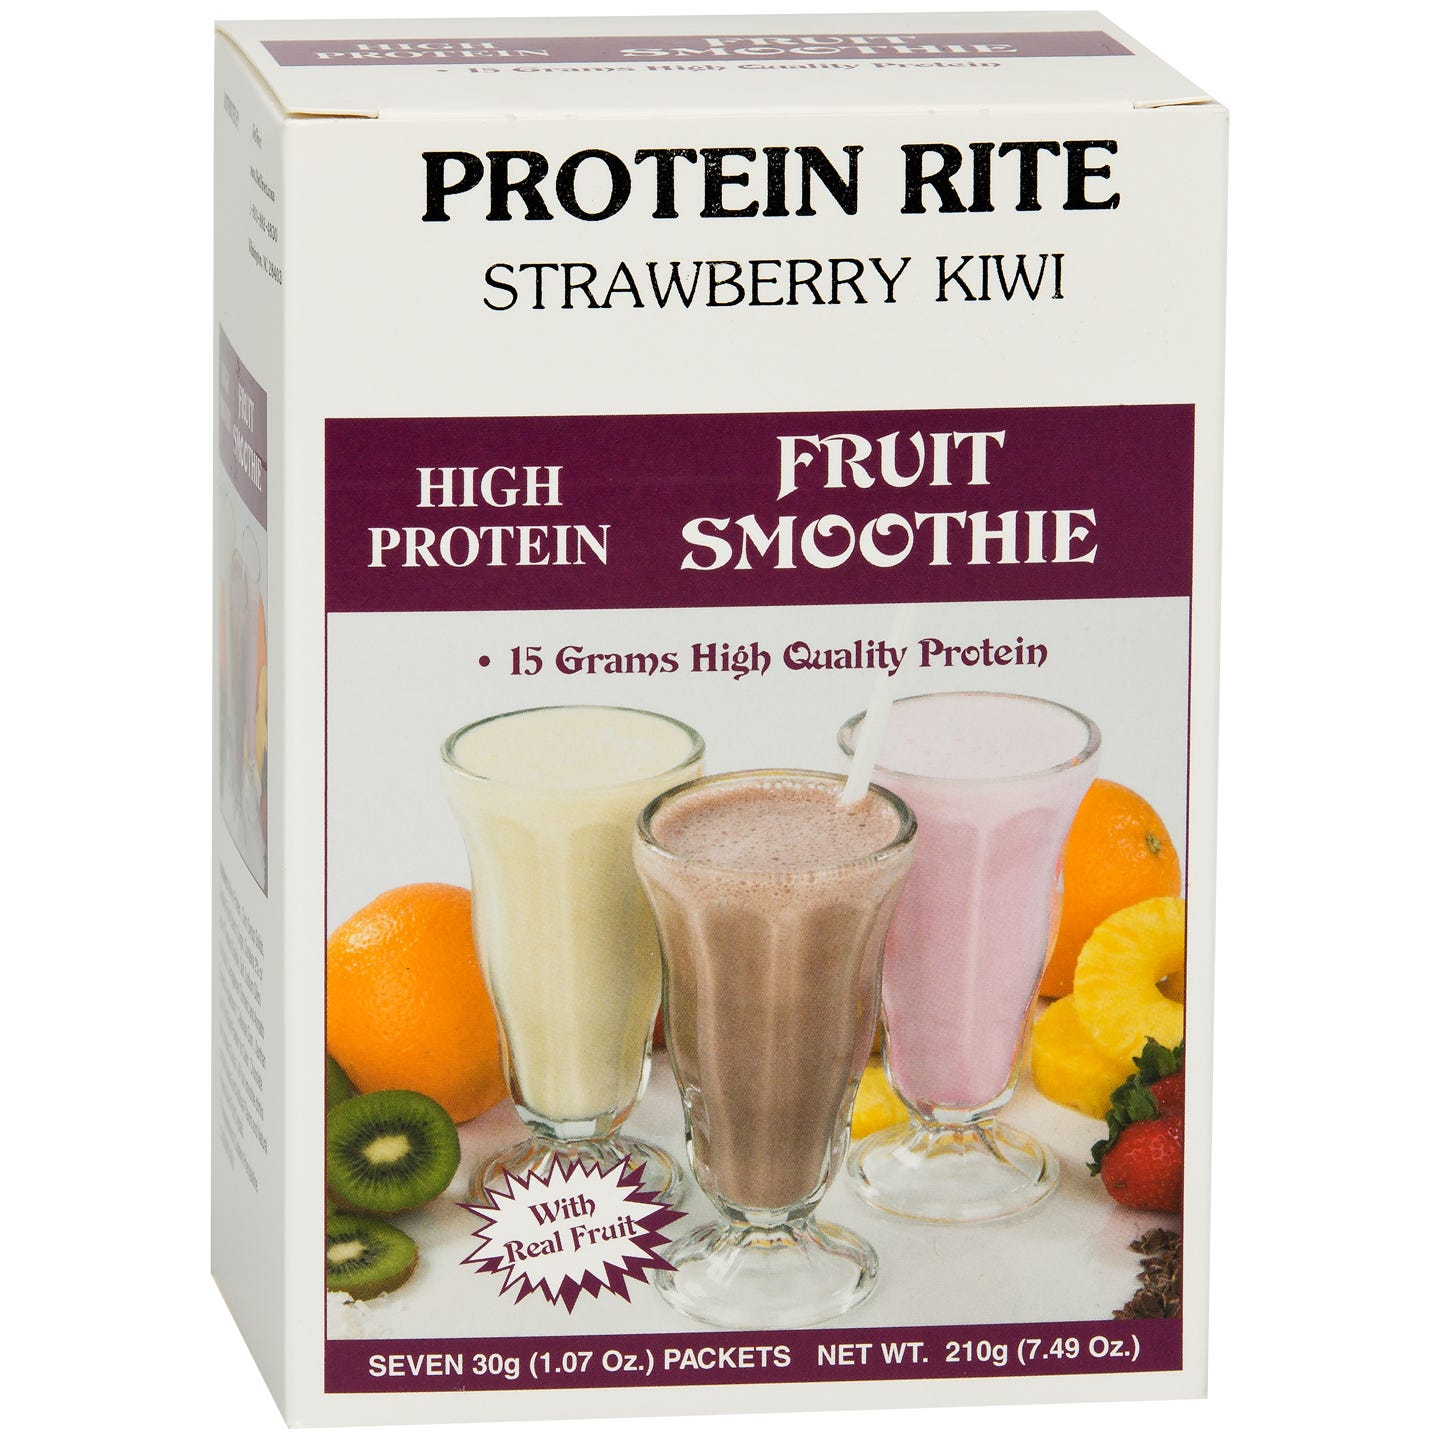 Protein Rite Fruit Smoothies - Strawberry Kiwi